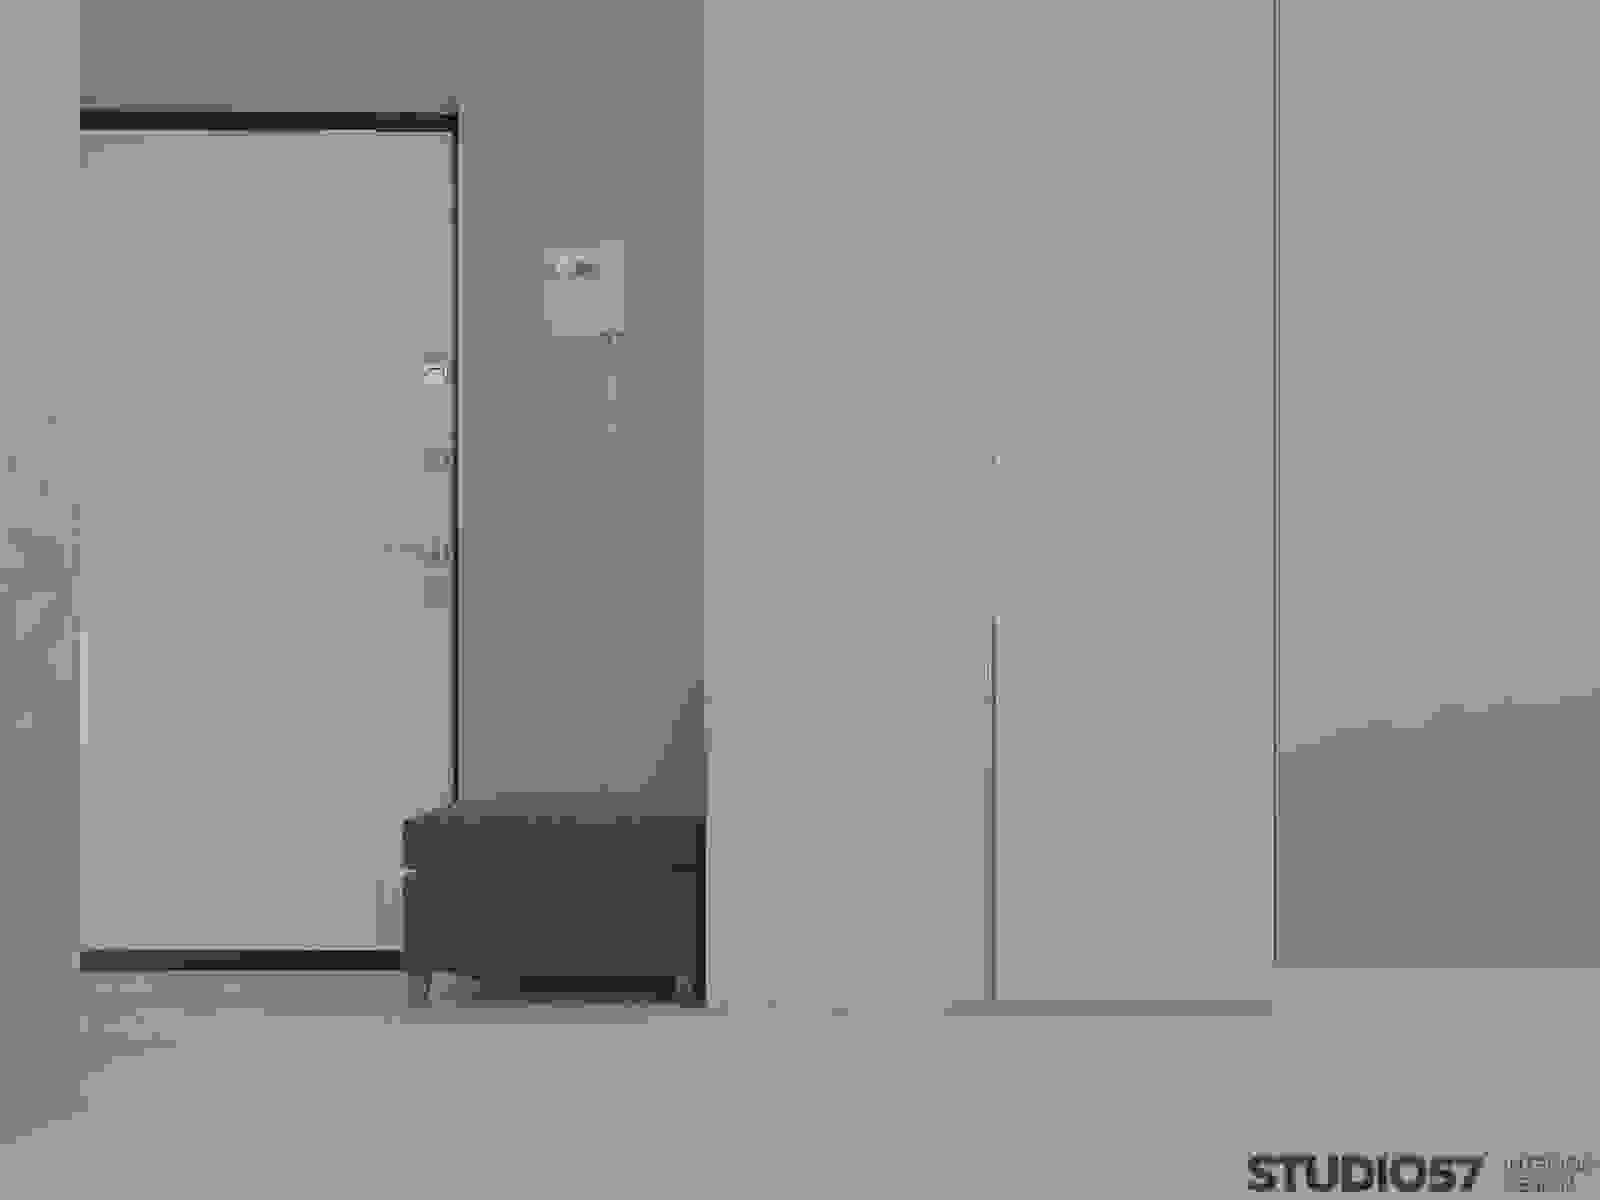 The interior of the hallway in the style of minimalism